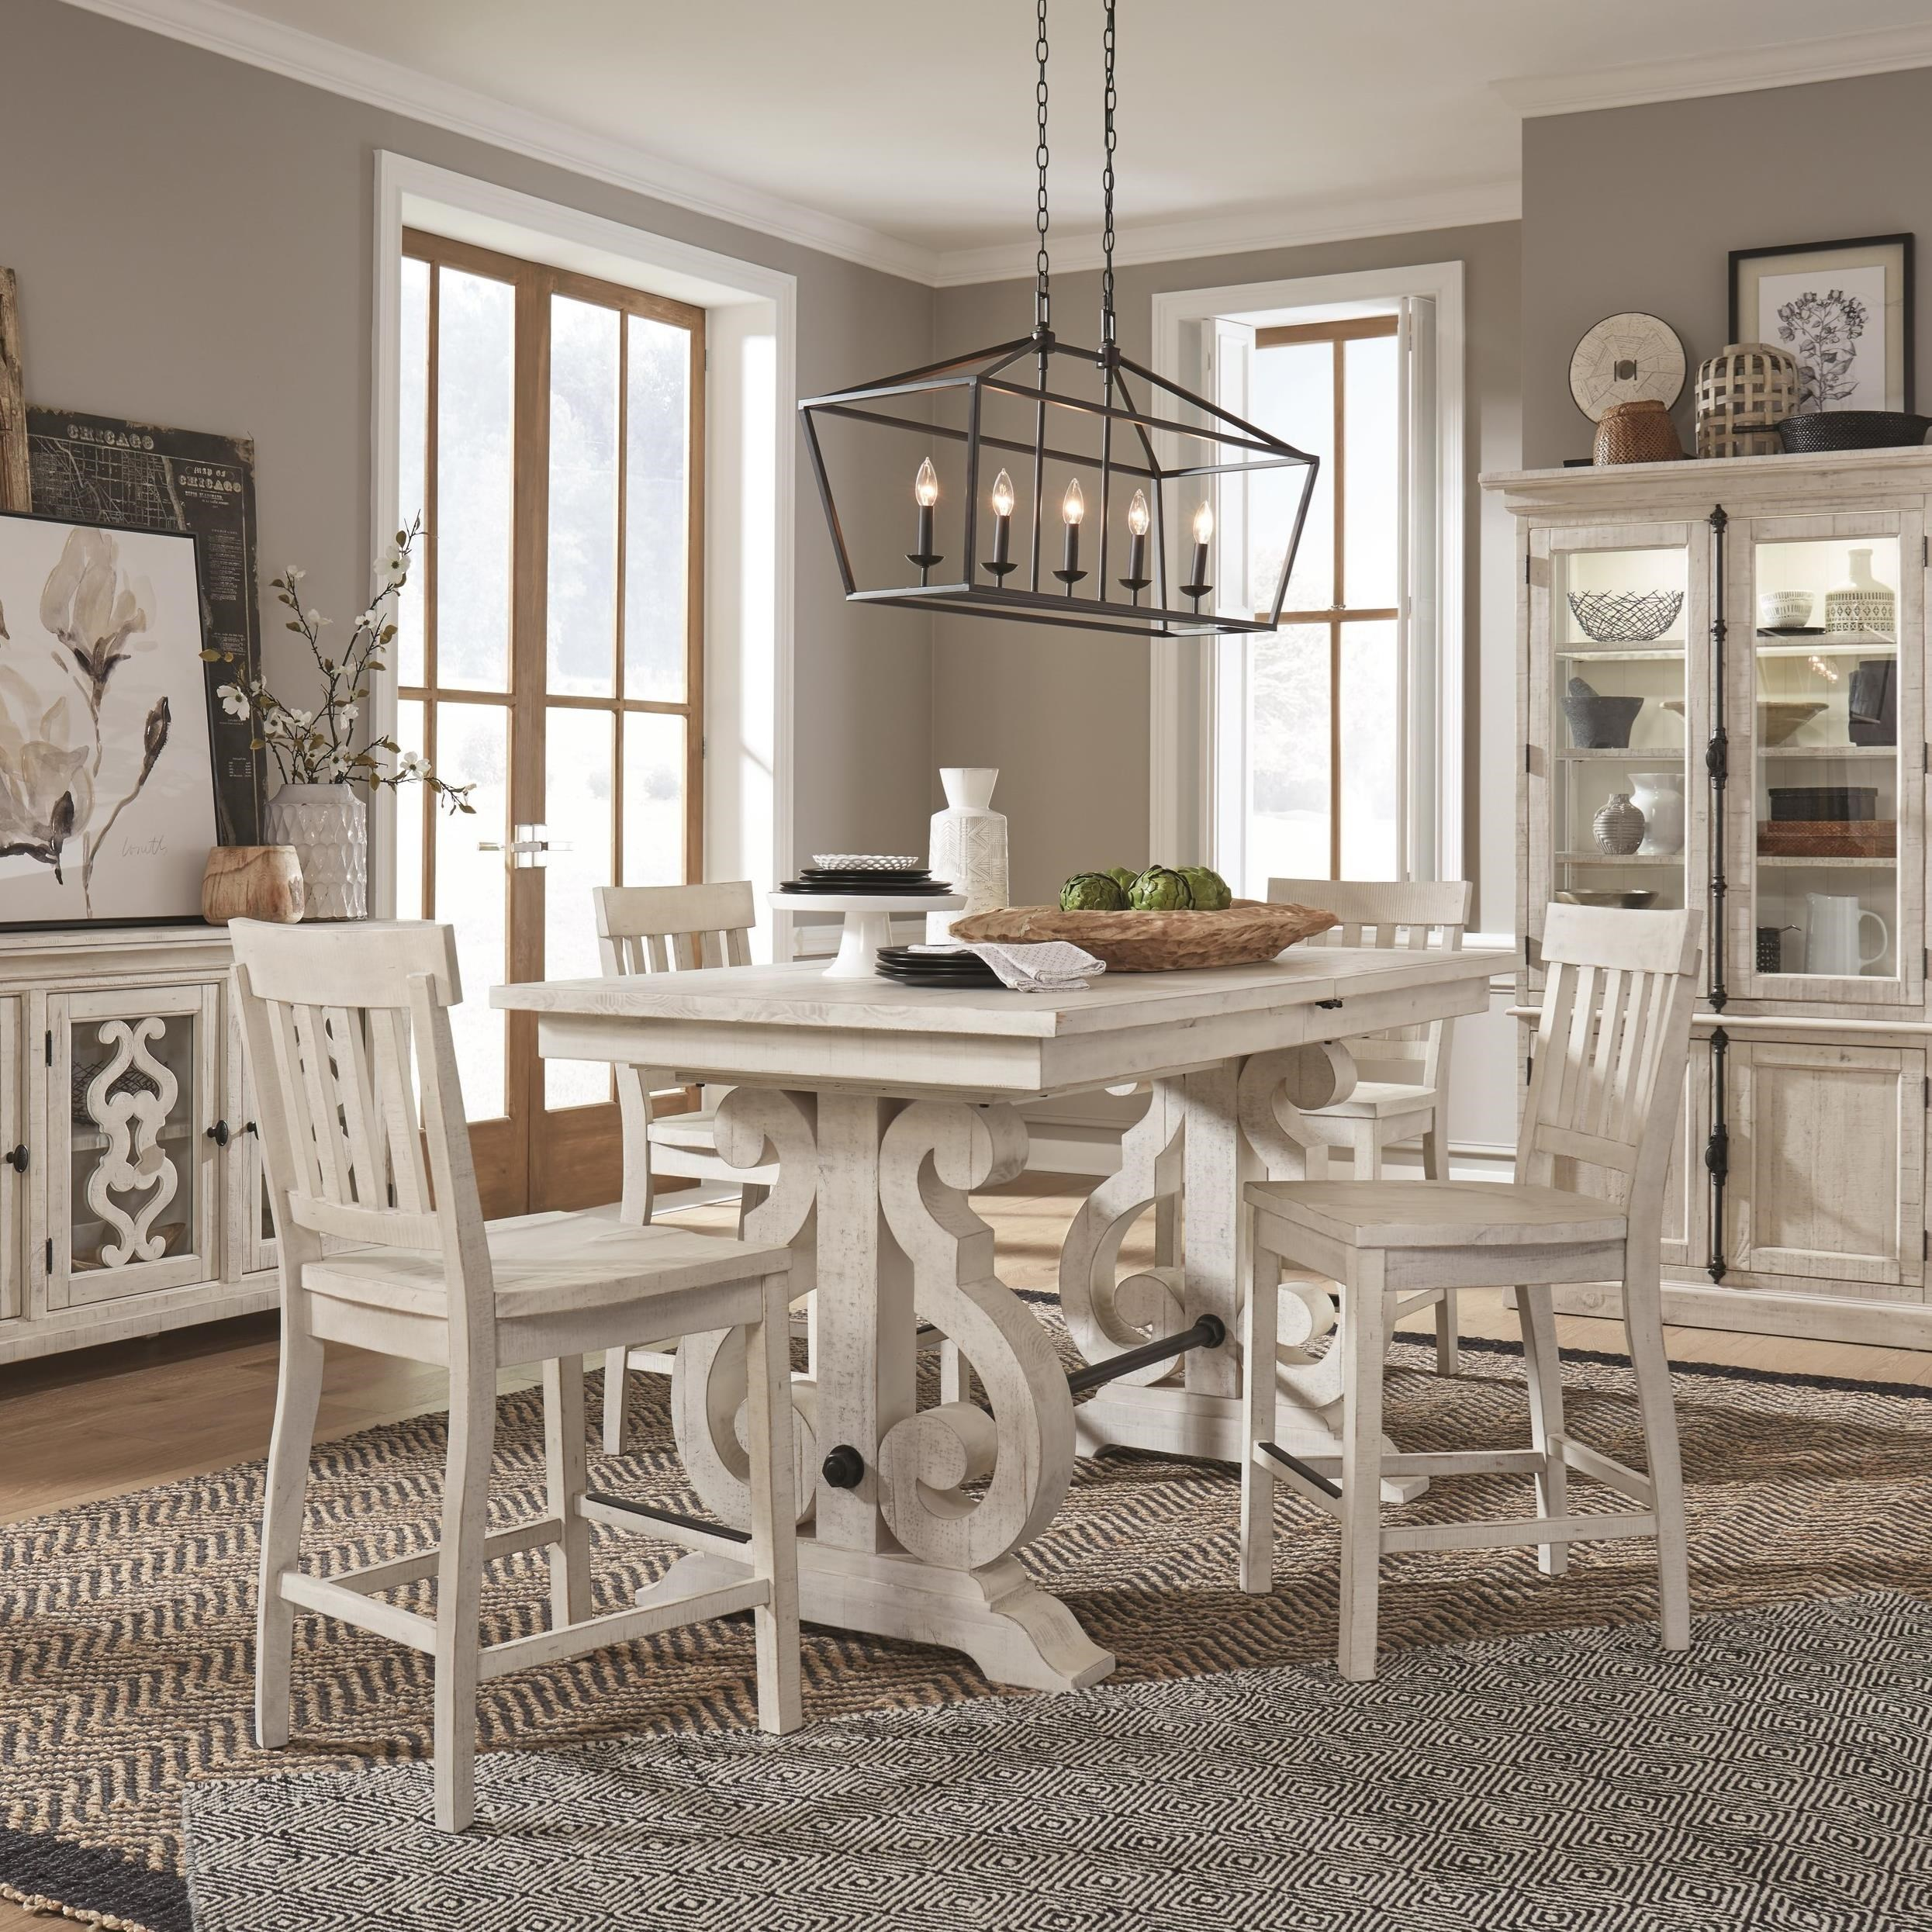 Picture of: Magnussen Home Bronwyn 5 Piece Farmhouse Counter Height Dining Table Set With Bar Stools Reeds Furniture Pub Table And Stool Sets